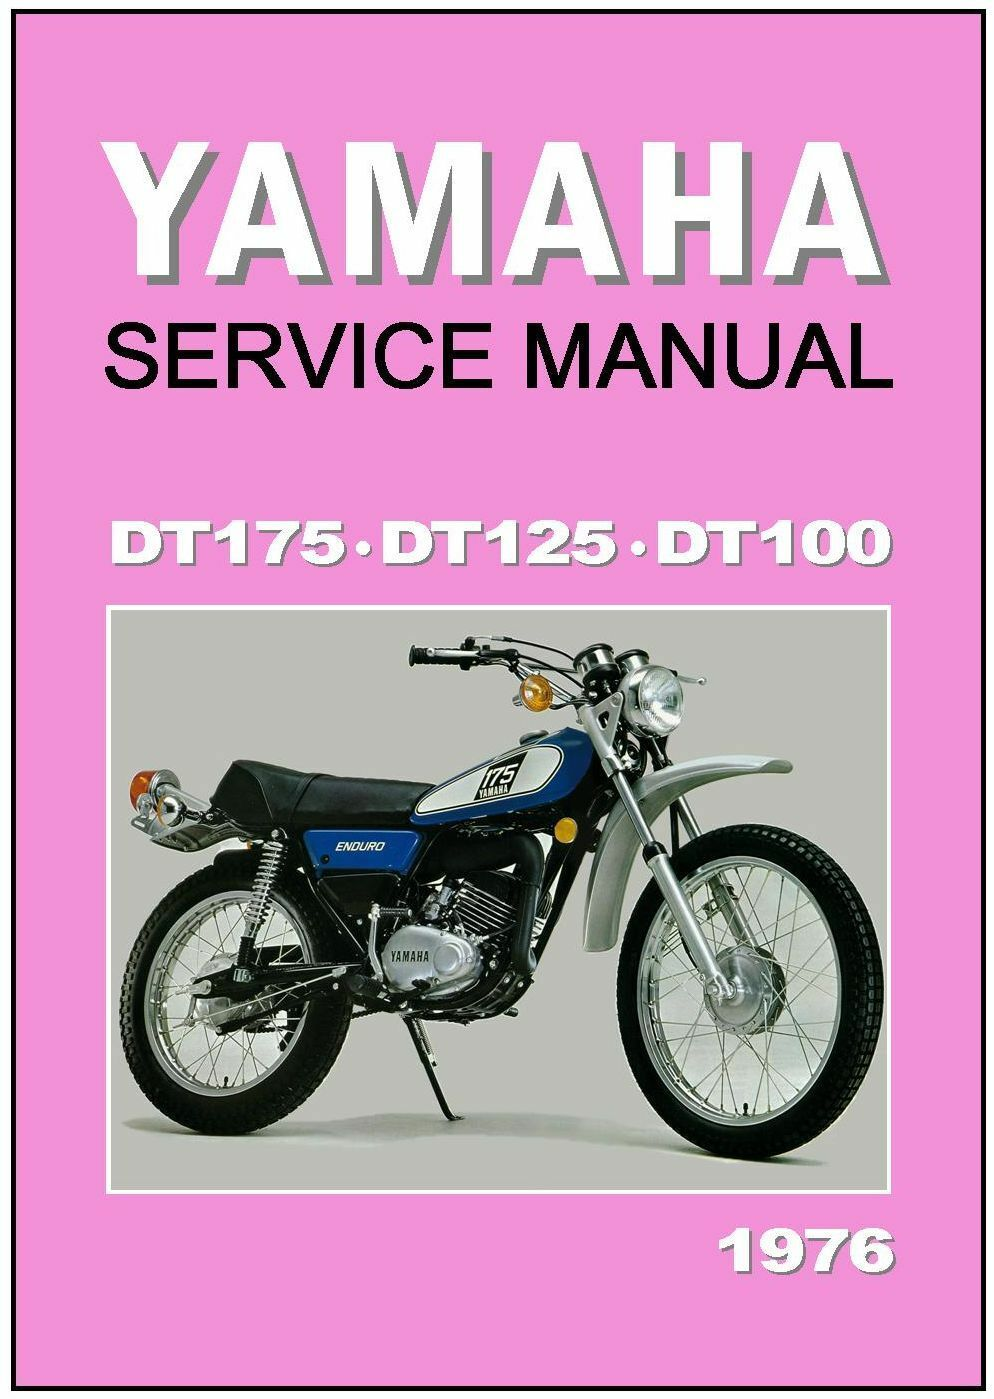 Wiring Diagram 1982 Yamaha Dt 100 Start Building A 78 Workshop Manual Dt175 Dt125 Dt100 1976 Dt175c Dt125c Dt100c Rh Picclick Com 1978 175 Front Rim 125 Body Parts